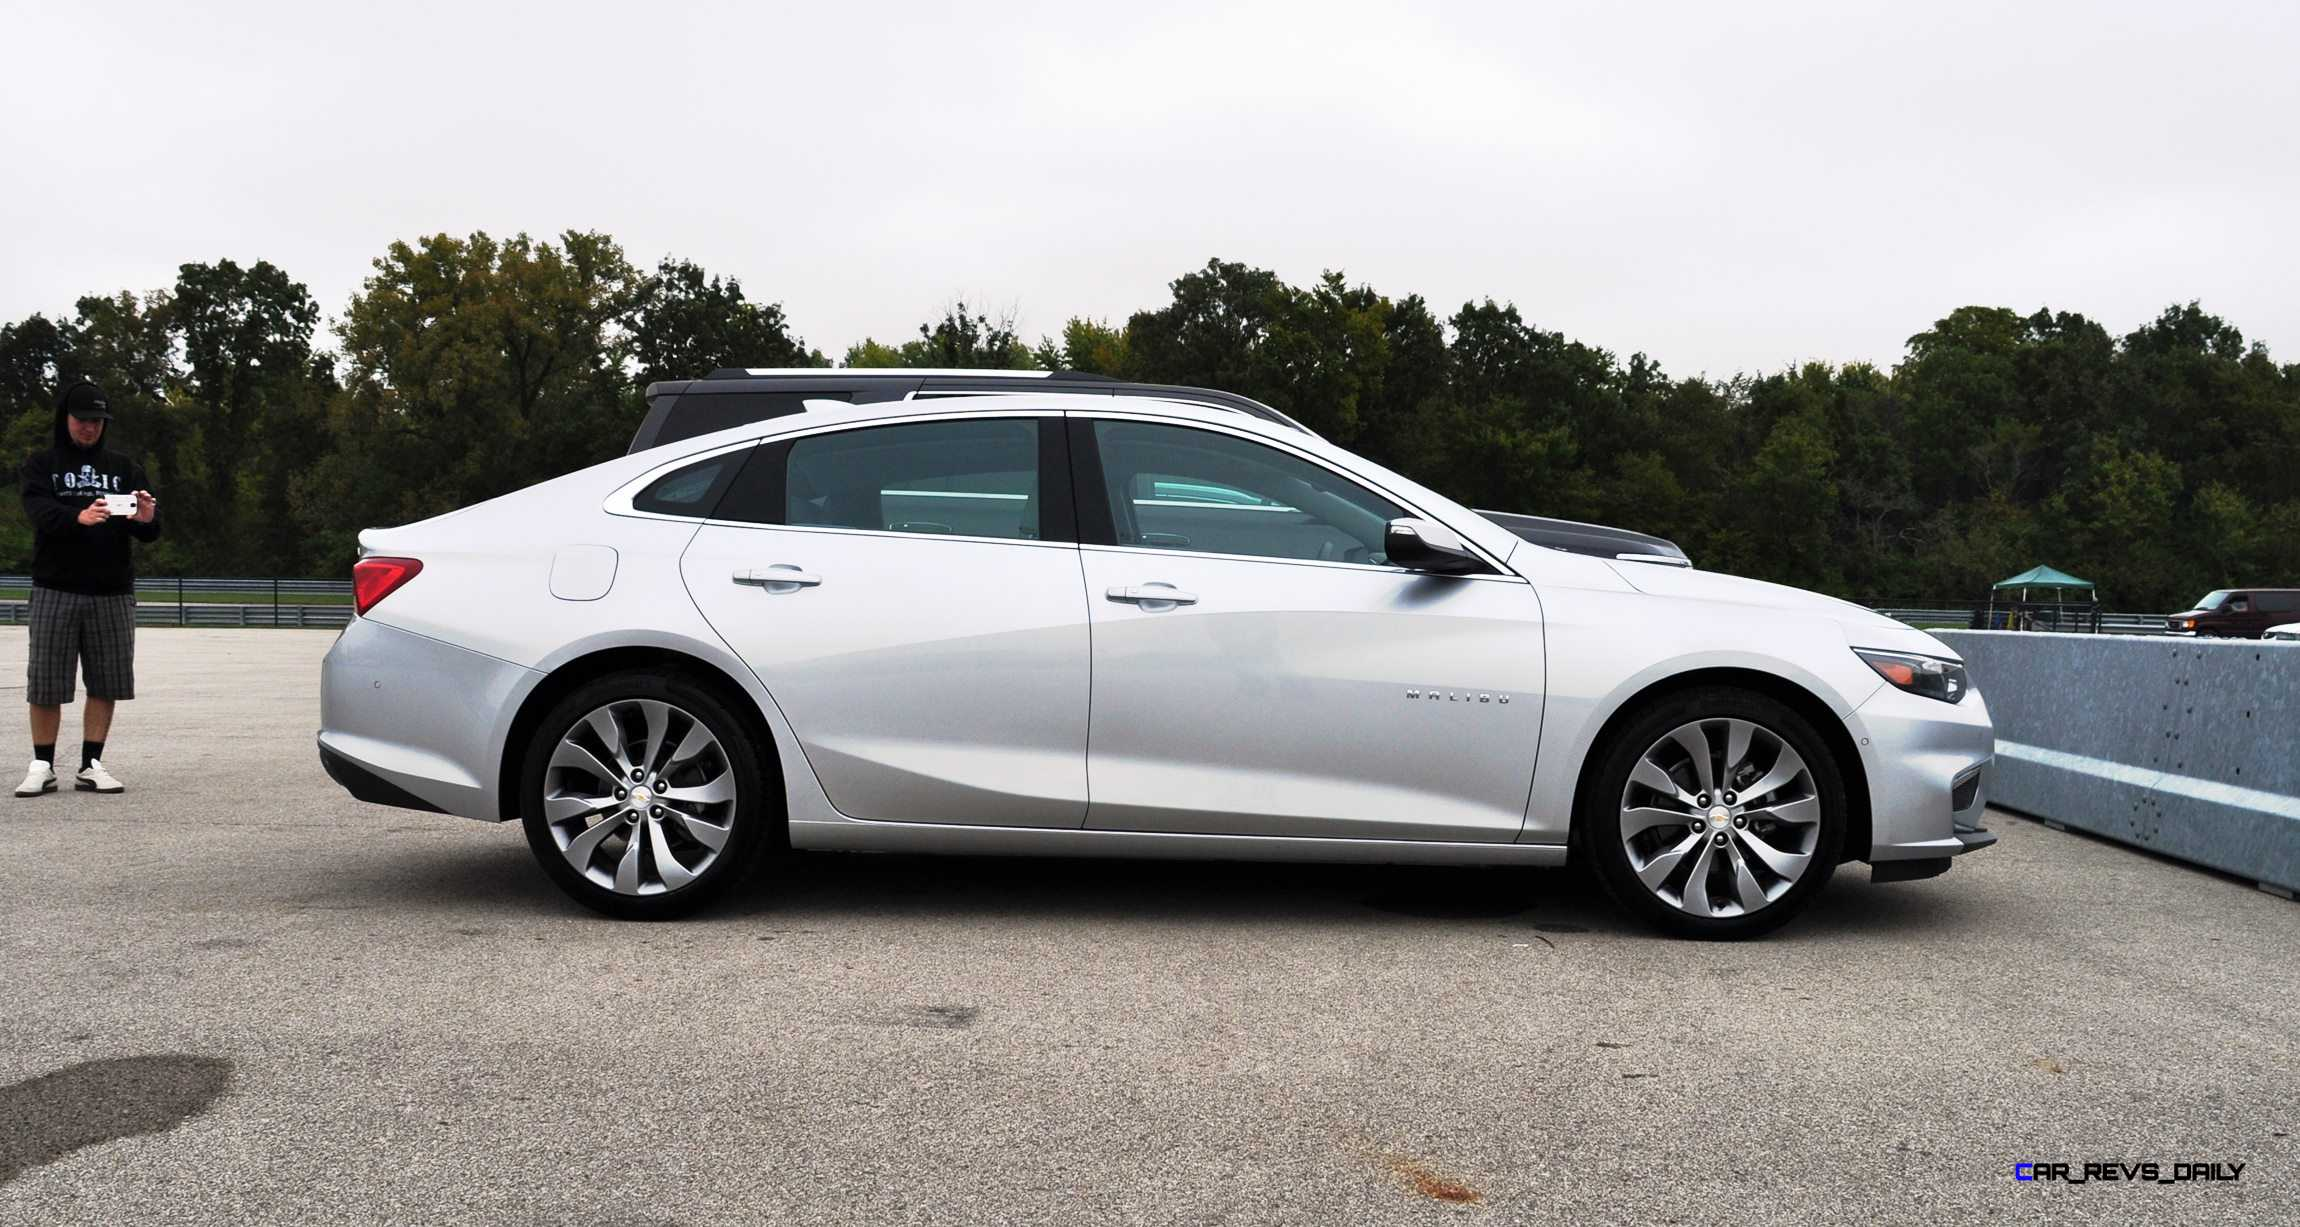 Beautiful 2016 Chevrolet MALIBU 20T  Preproduction First Look Inside And